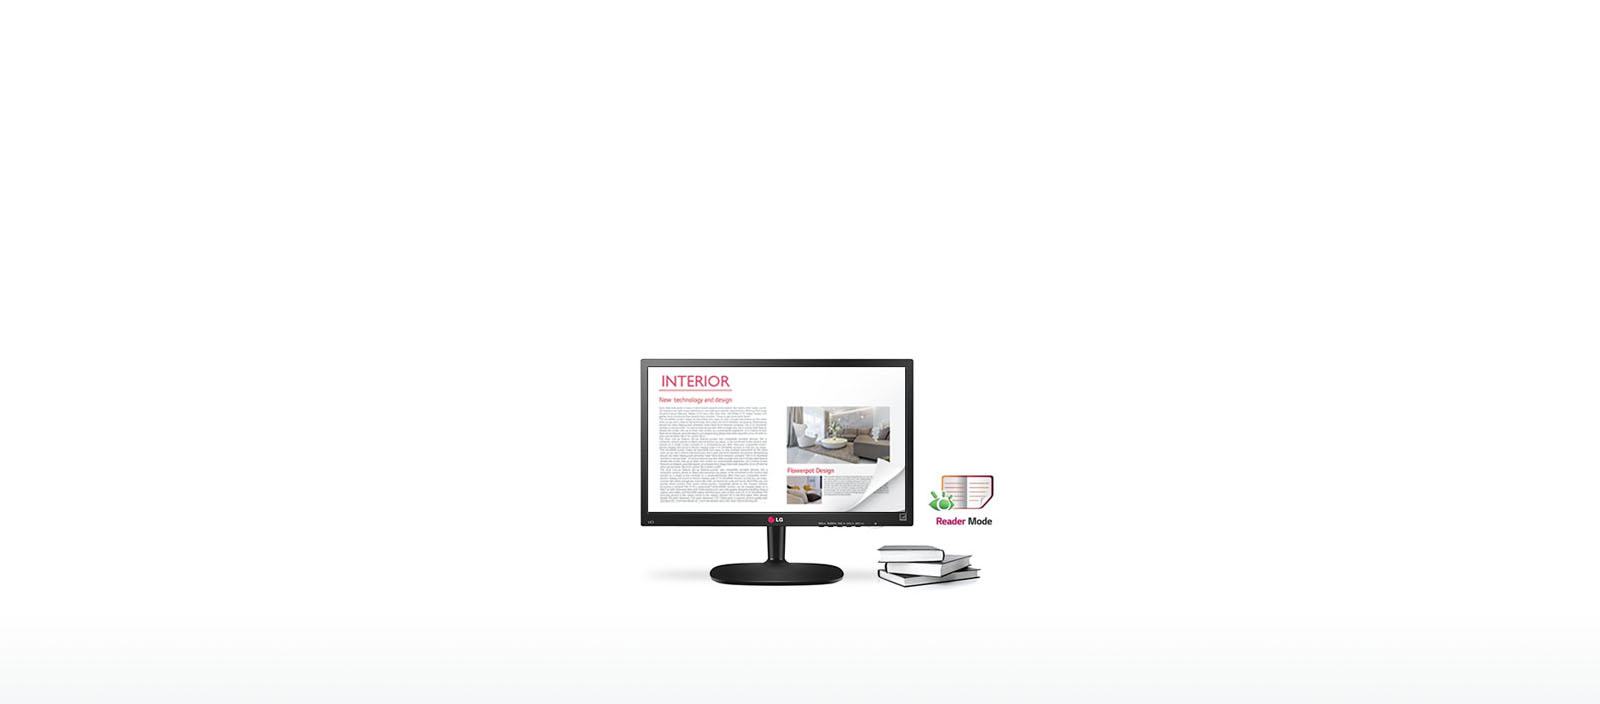 Lg 27mp33hq Black 27 5ms Hdmi Widescreen Led Backlight Lcd Monitor Asus Vc279h Eye Care Frameless Full Hd Ips Speaker Tuv Oled Tvs Unmatched Color Realism